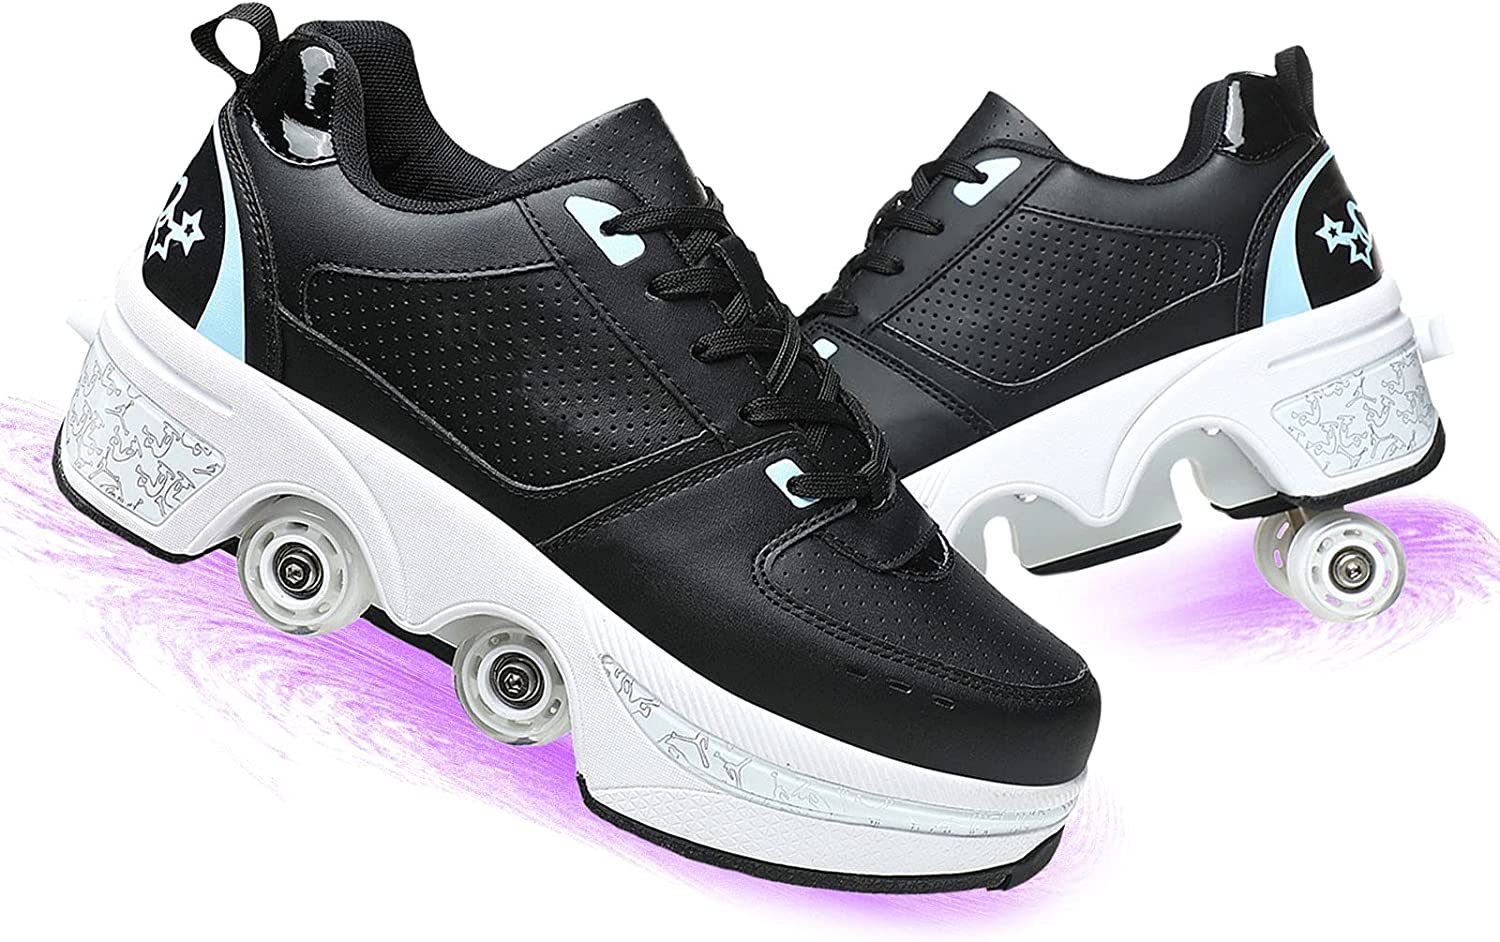 NNZZY Multi-Purpose Max 67% OFF 2-in-1 Double-Row Skates Deformation Roller Excellence